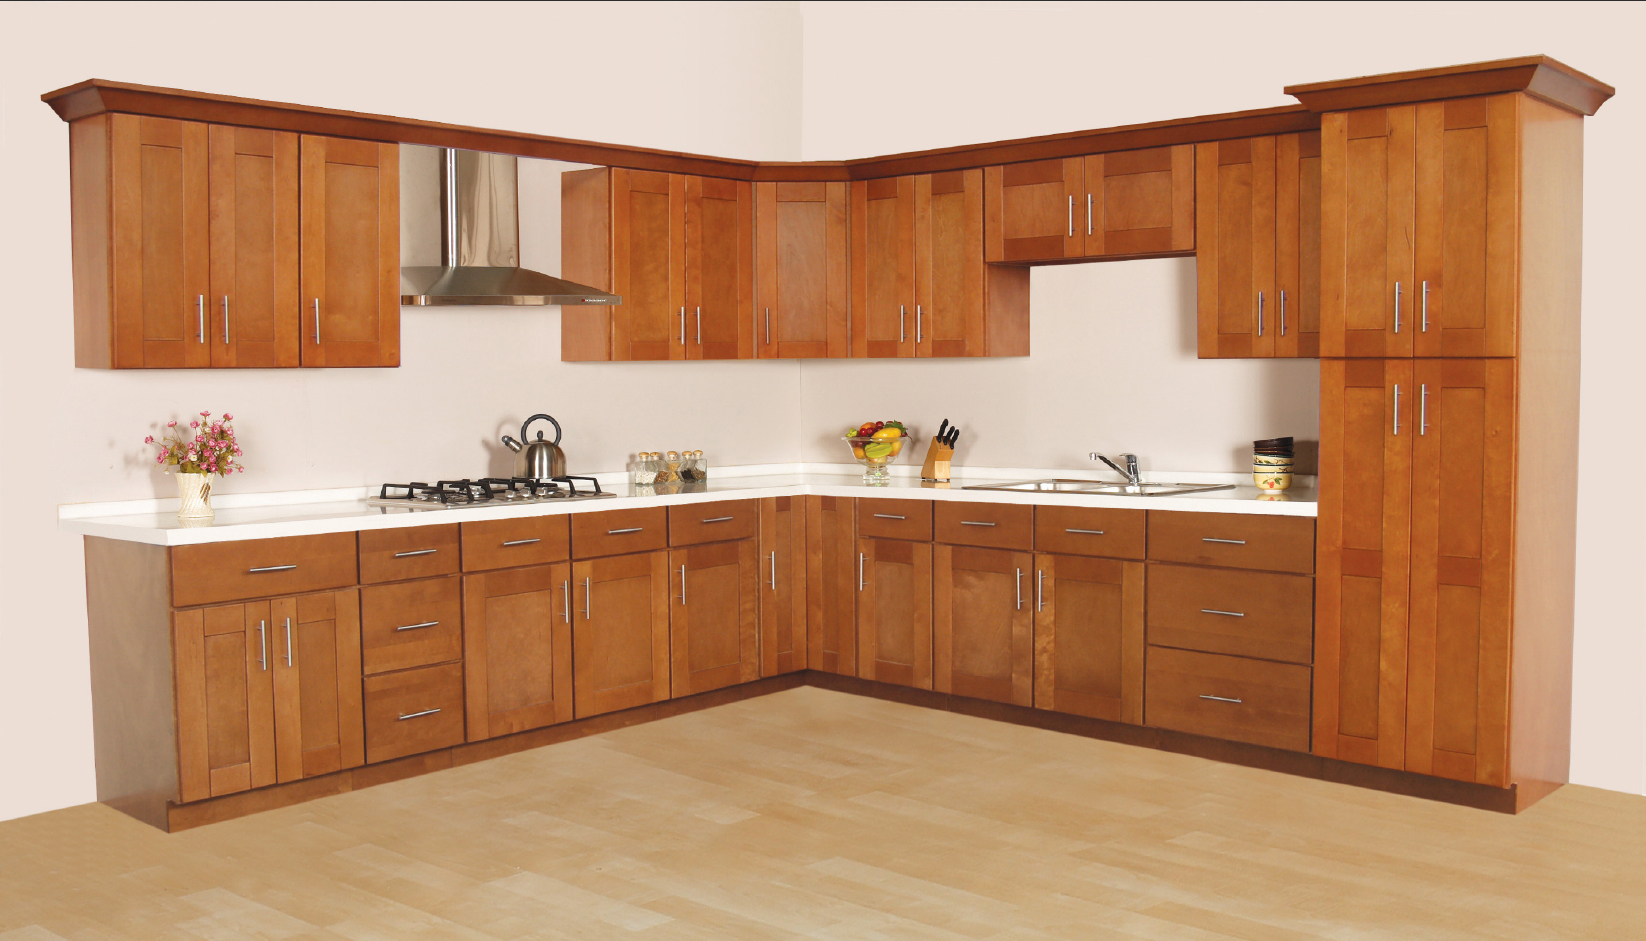 Menards kitchen cabinet price and details home and for 9x9 kitchen layout